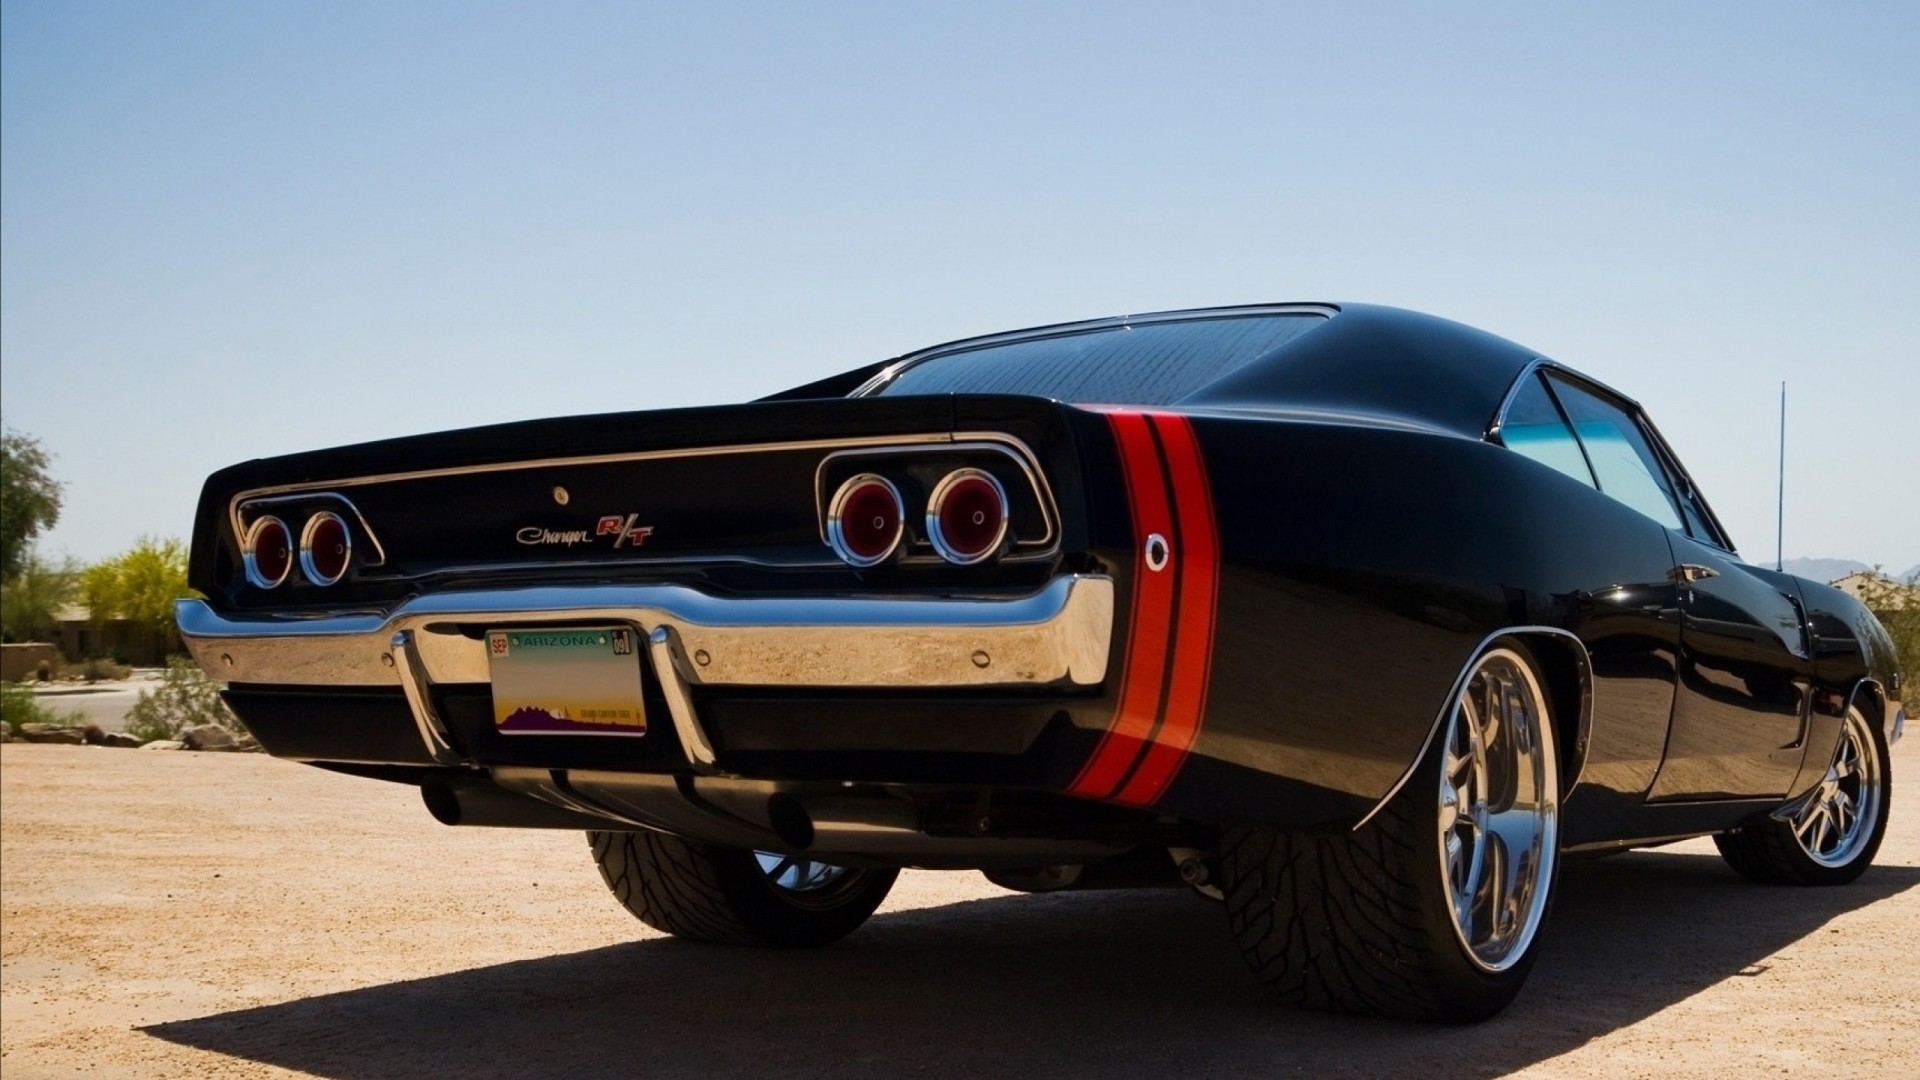 Old Muscle Car Wallpaper ·①